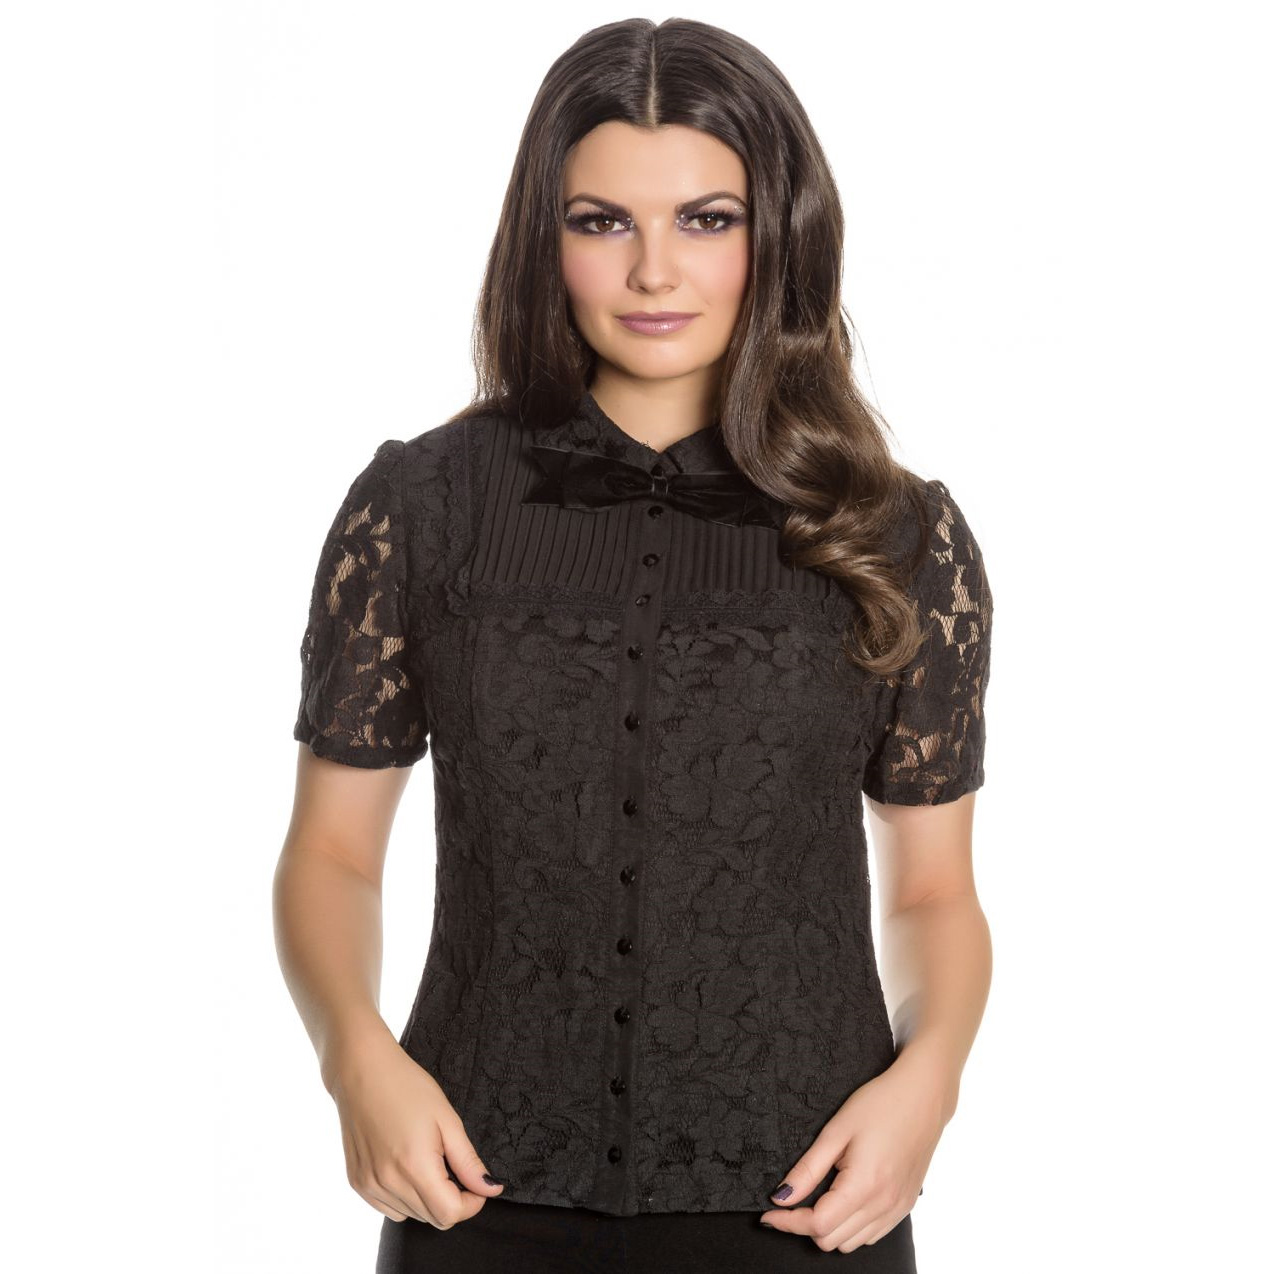 Hell-Bunny-Spin-Doctor-Vampire-Gothic-Shirt-Top-ROWENA-Lace-Blouse-All-Sizes Indexbild 19